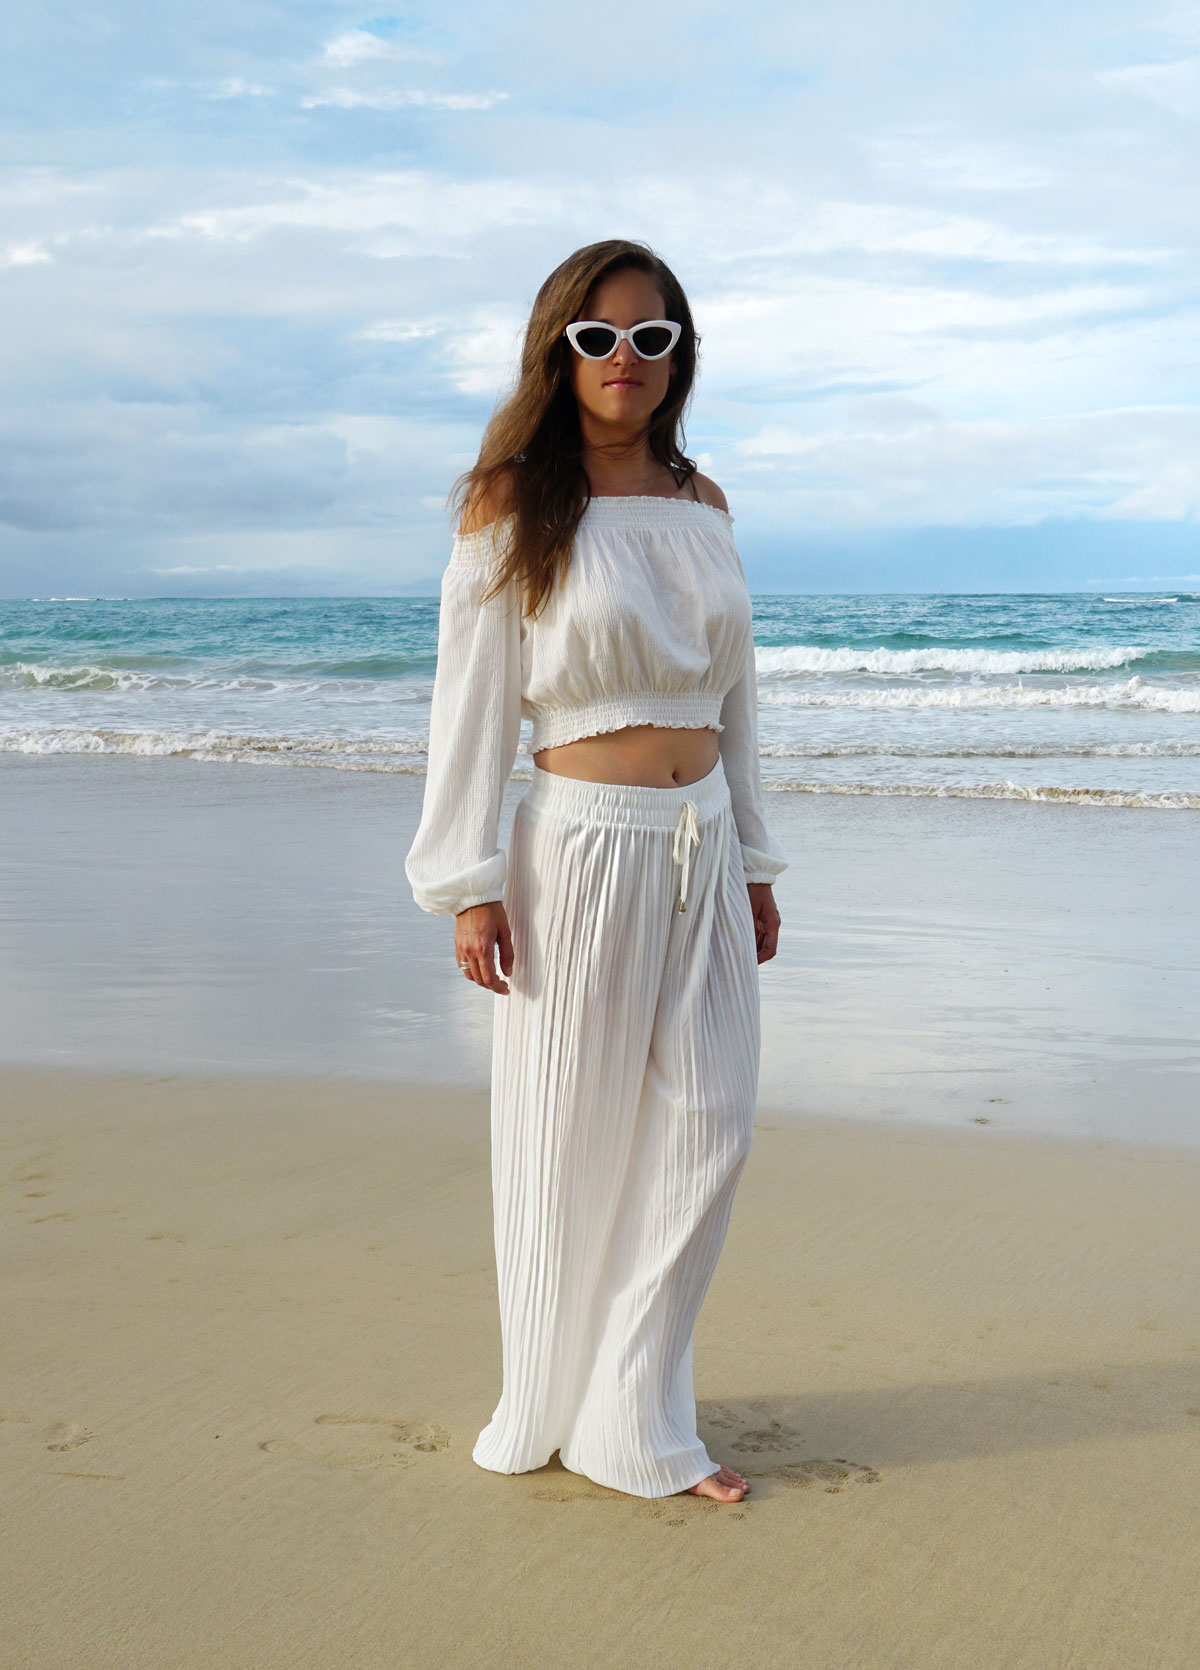 White from head to toe with white pants, and white shoulder off shirt and a white sunglasses.